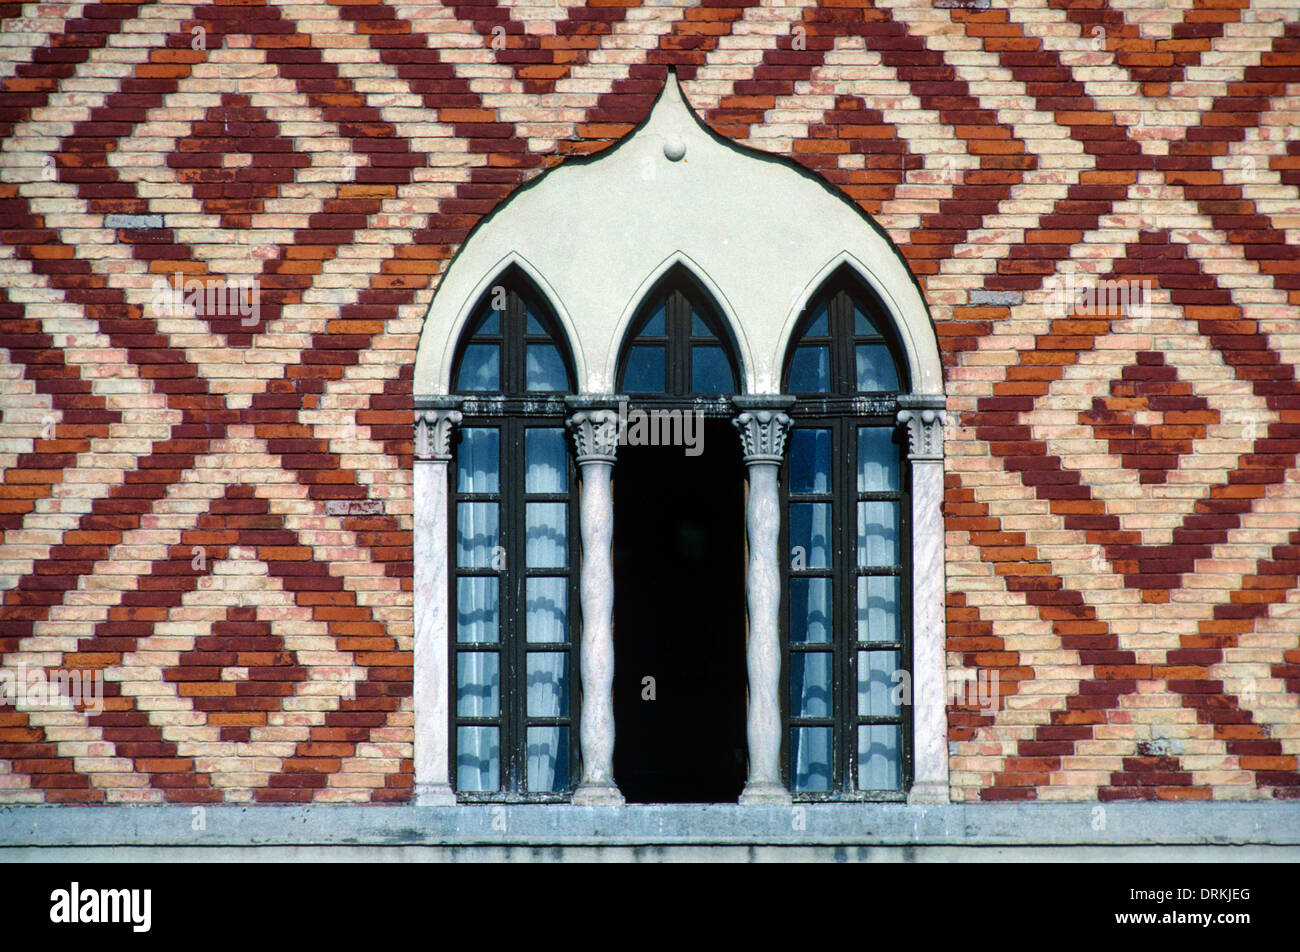 Gothic Window & Patterned Brickwork of Governor's Palace or Palazzo Governale Rhodes Greece - Stock Image